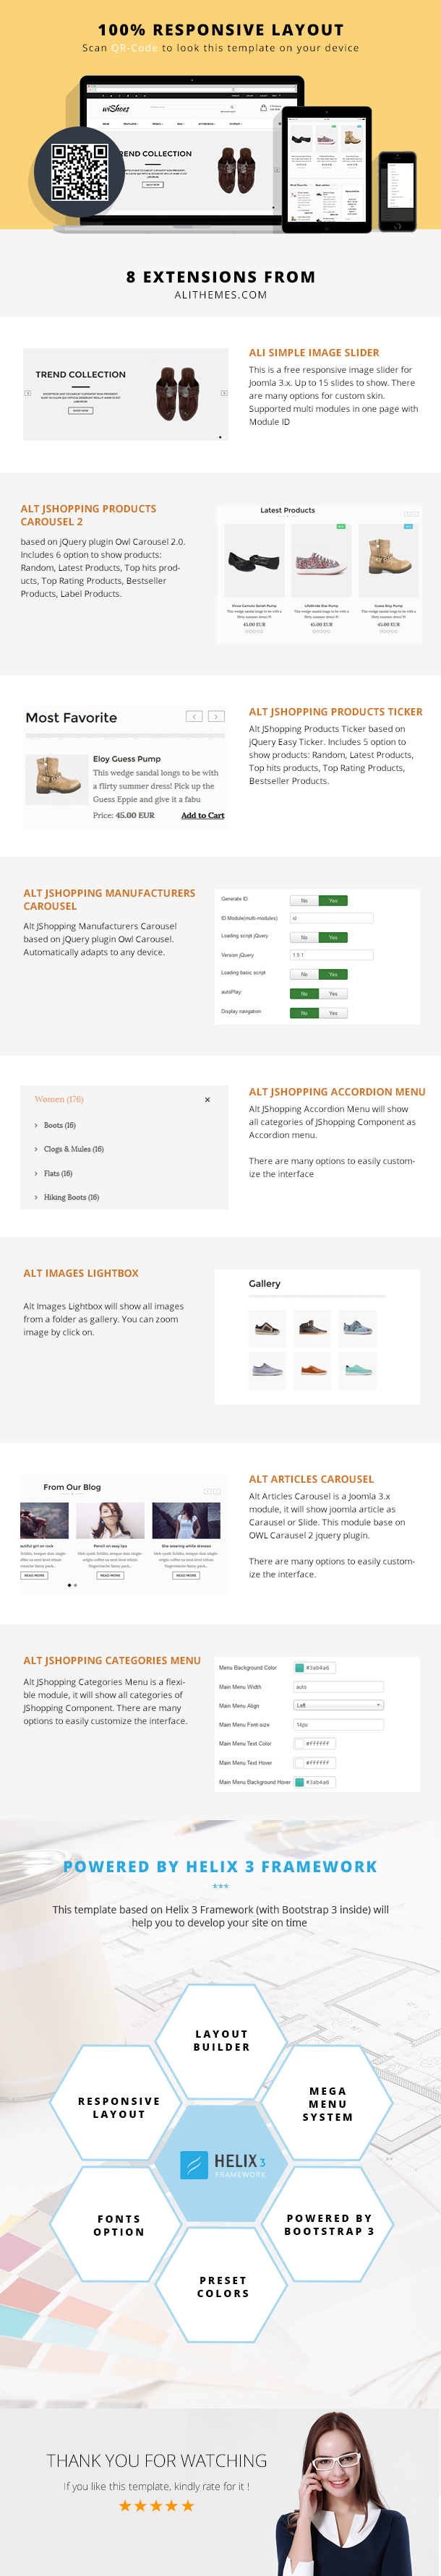 Wishoes preview